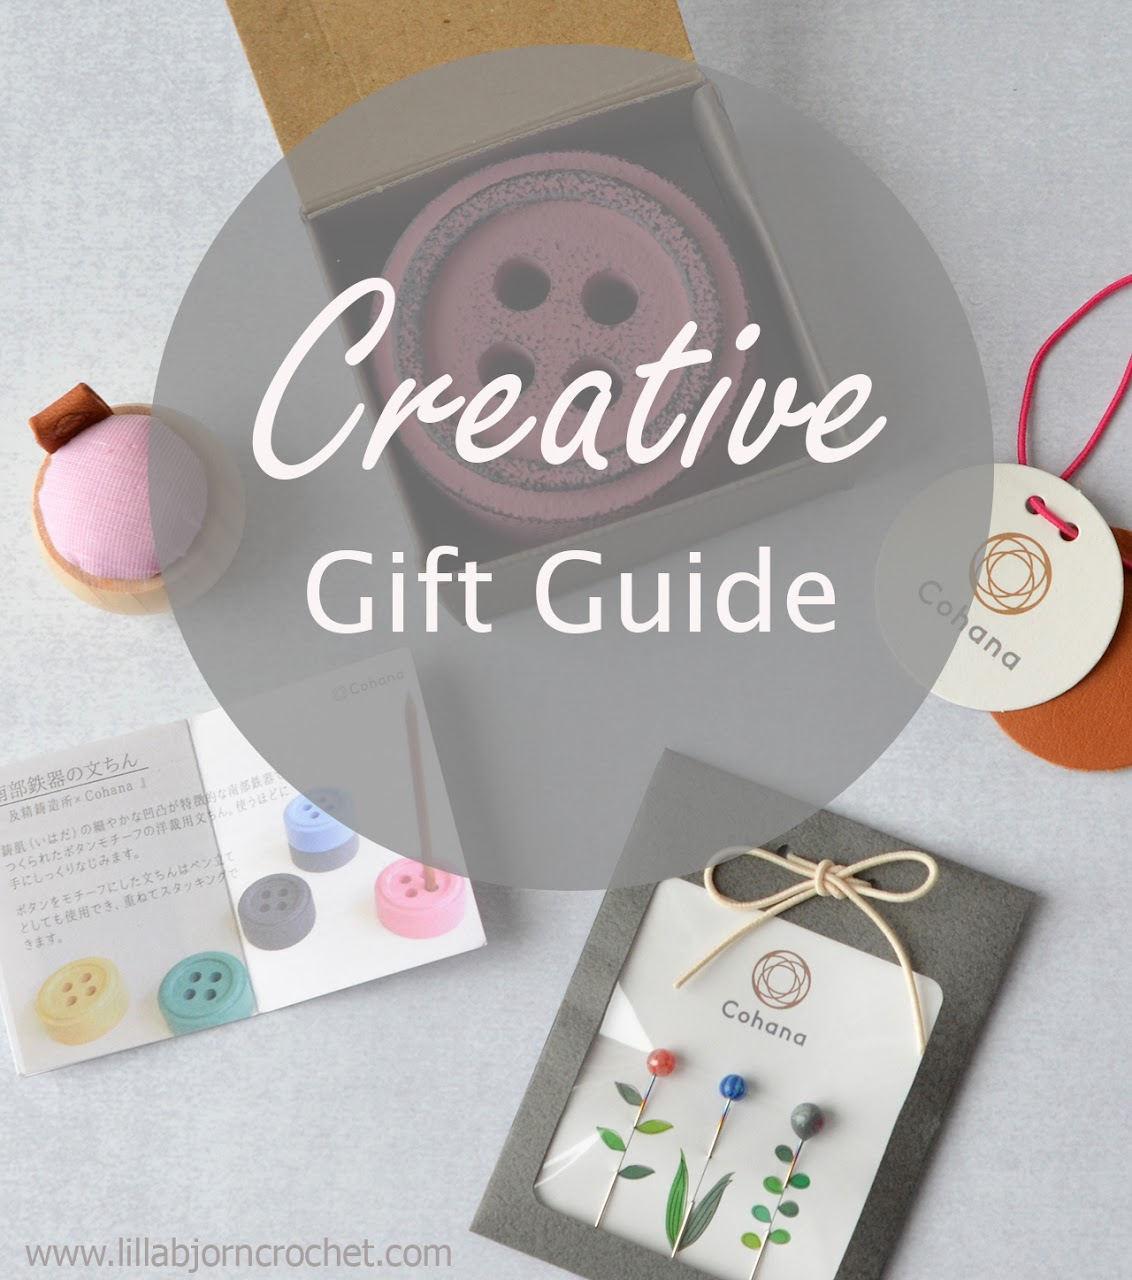 Looking for a Christmas gift to a creative friend? A gift guide by www.lillabjorncrochet.com